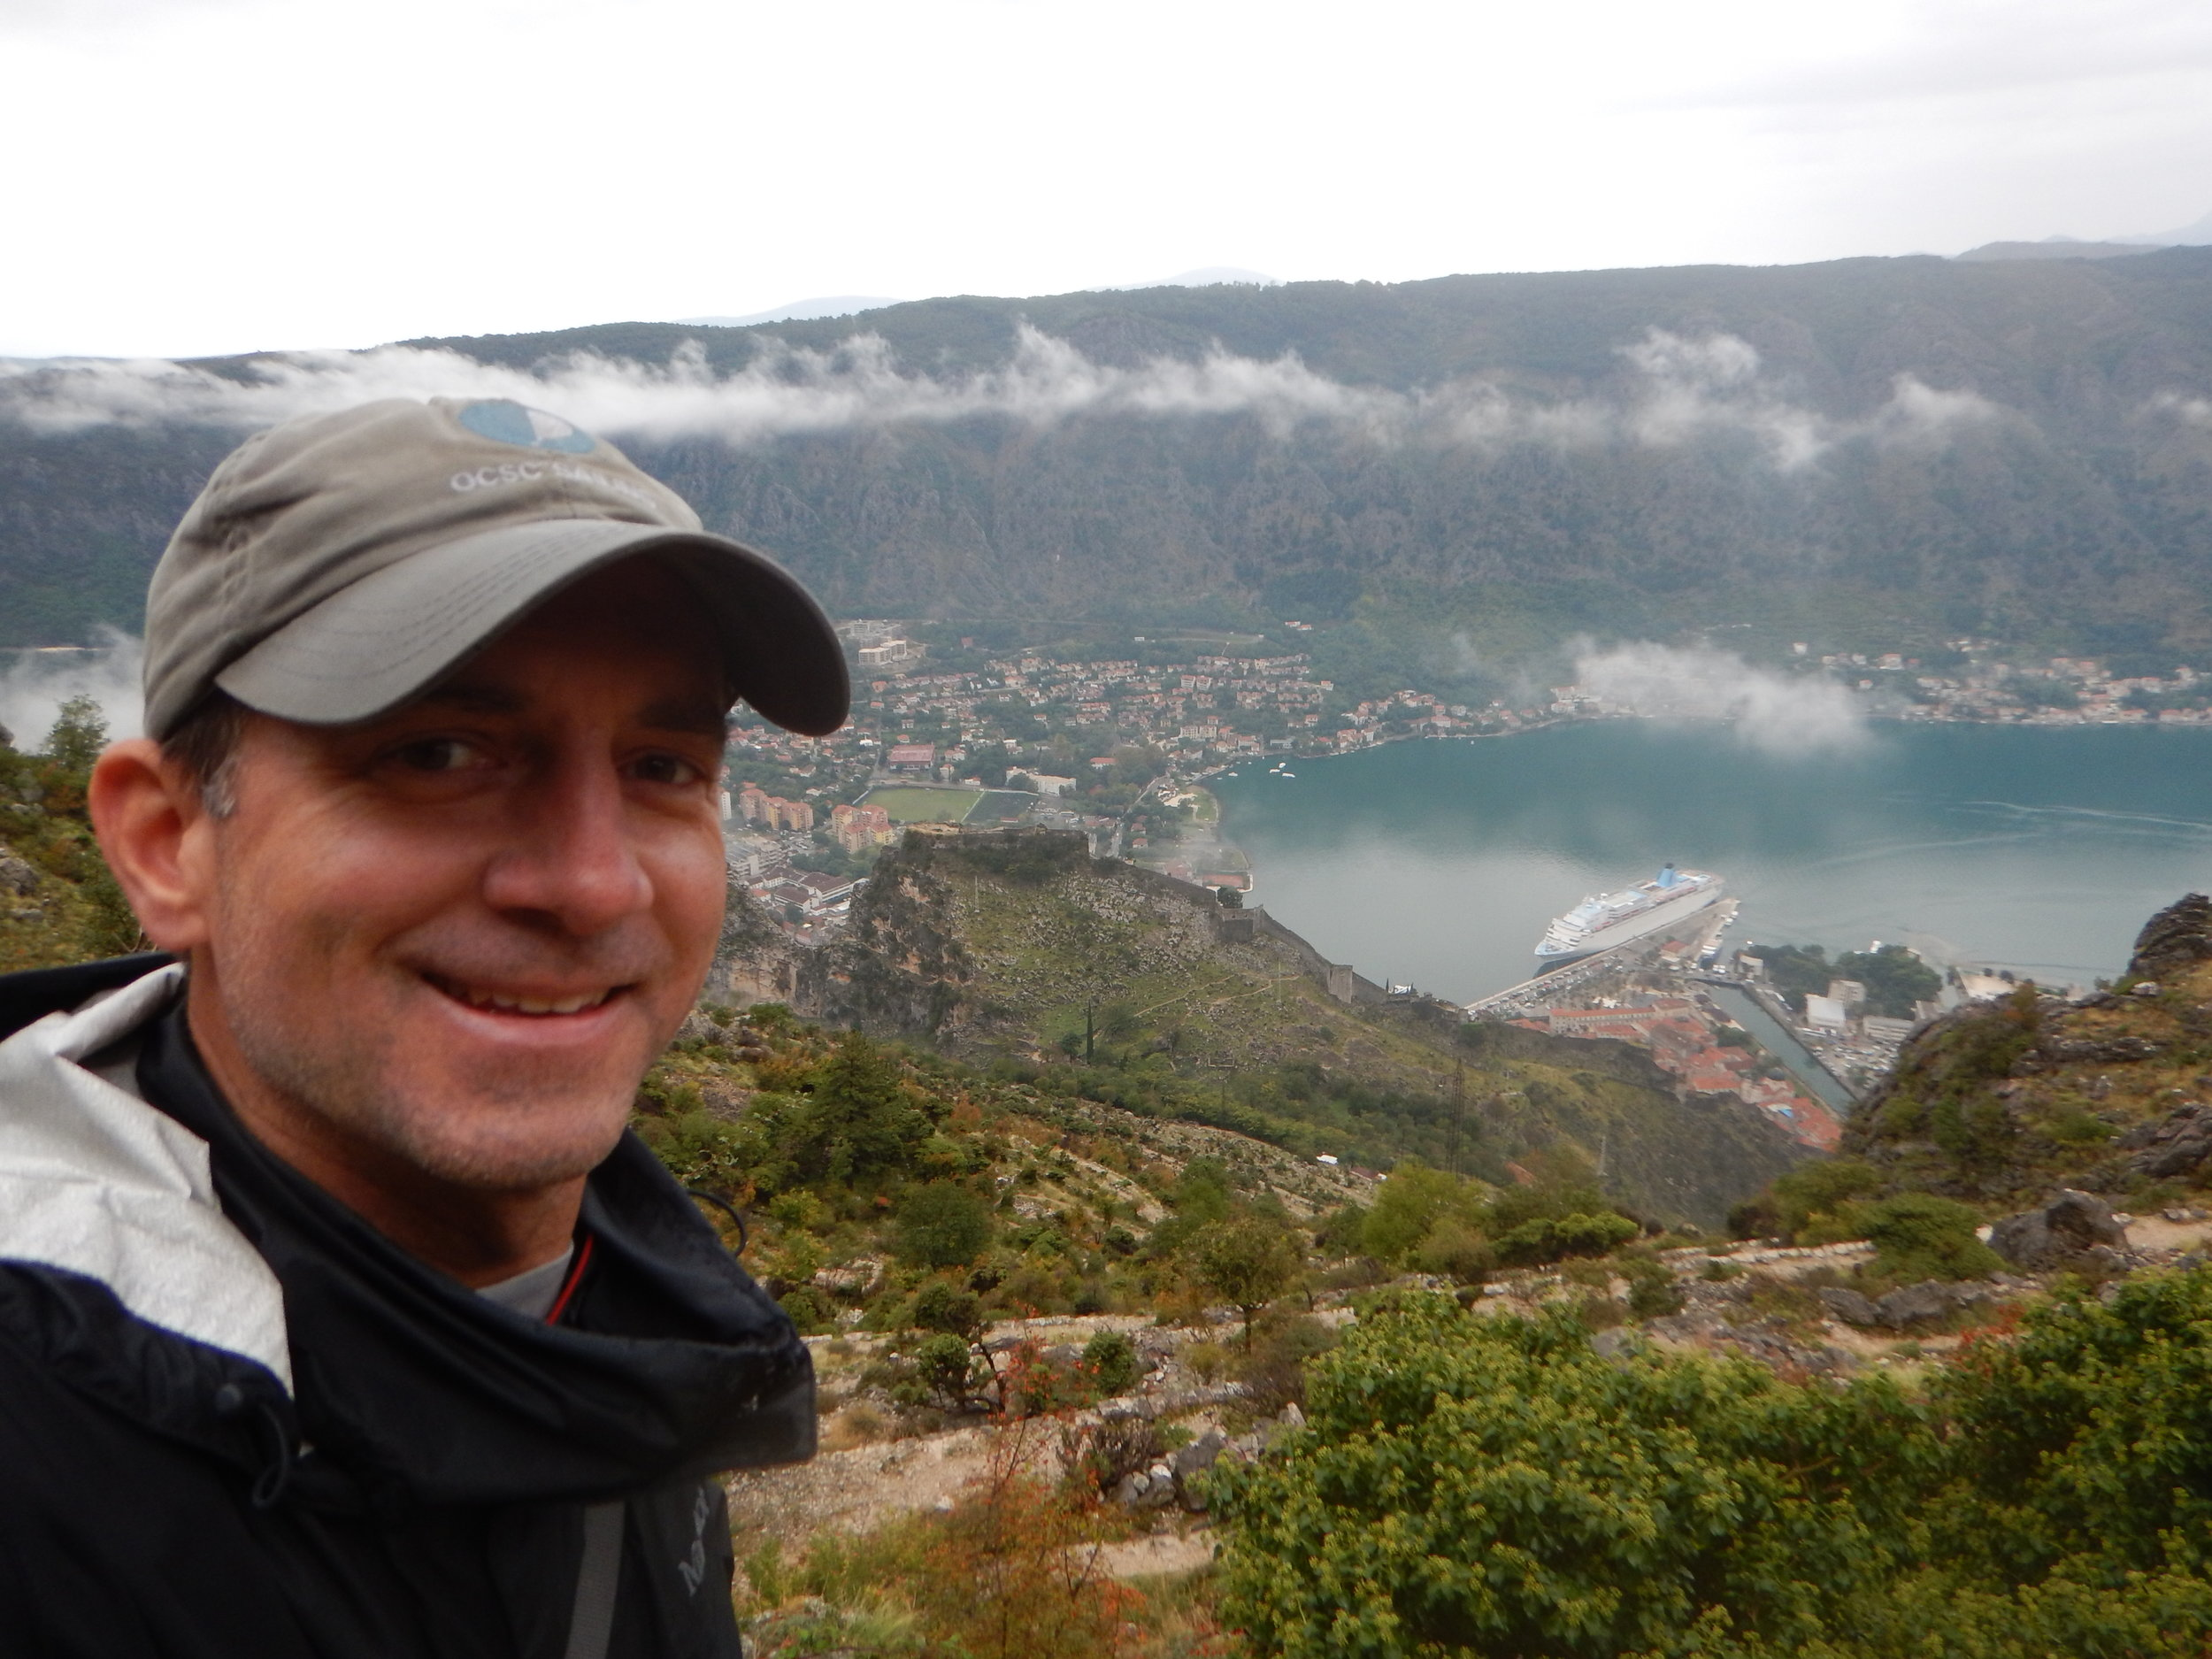 Hiking up the Ladder of Cattaro (Kotor), looking back down on St. John's Castle and the famous wall along the hills.